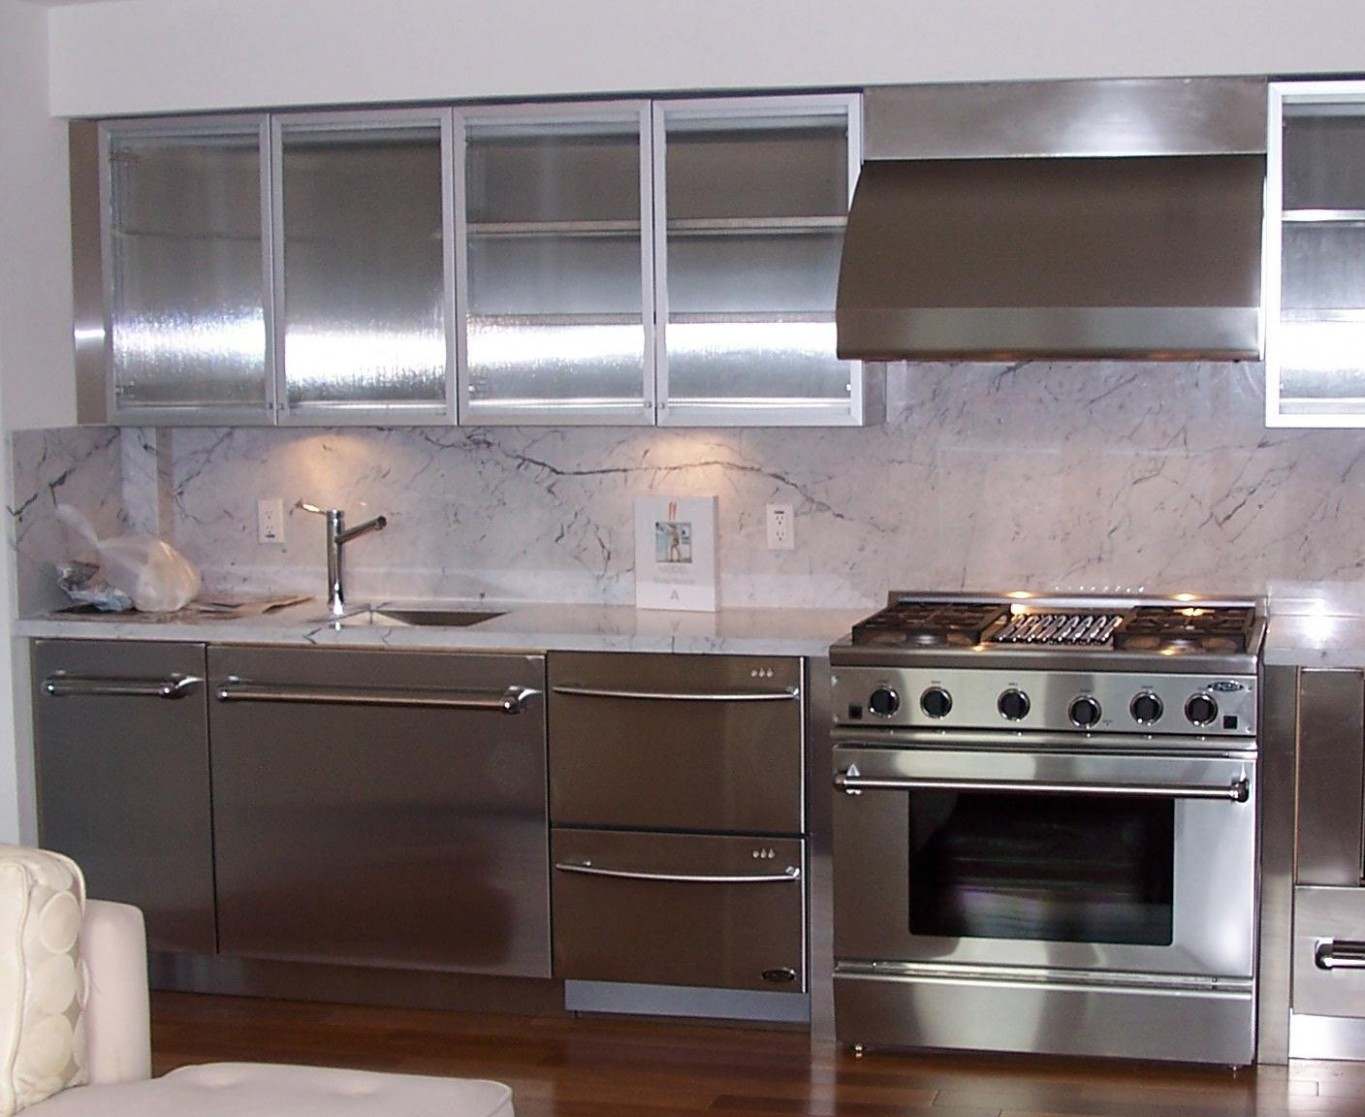 Kitchen Cabinet Guide - Prices, Materials, Installations, Repairs - Metal Kitchen Cabinets Prices